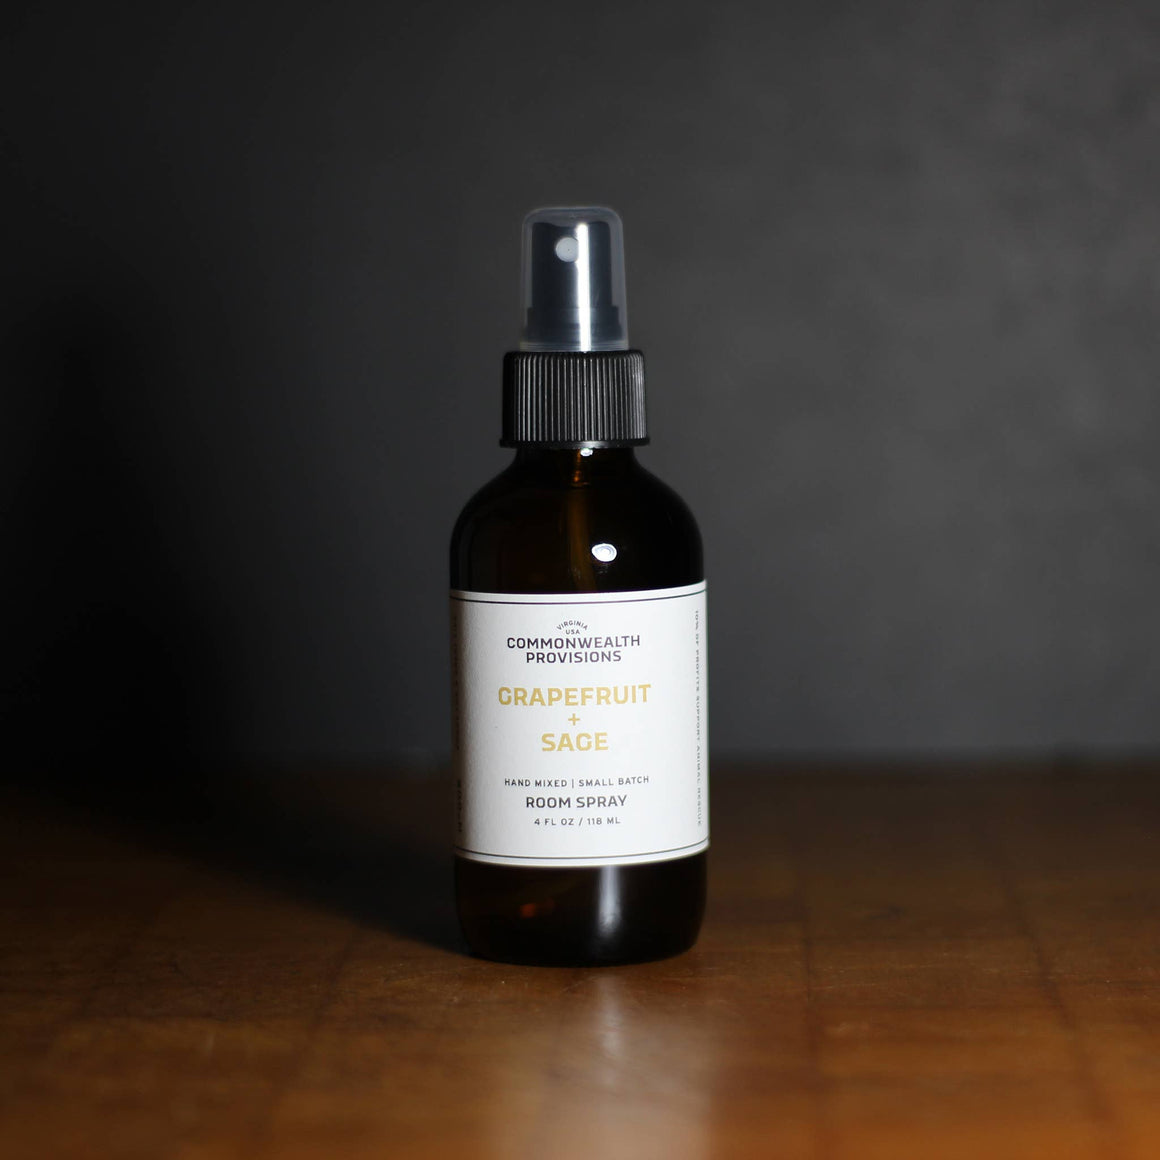 Commonwealth Provisions Room Spray - Grapefruit + Sage